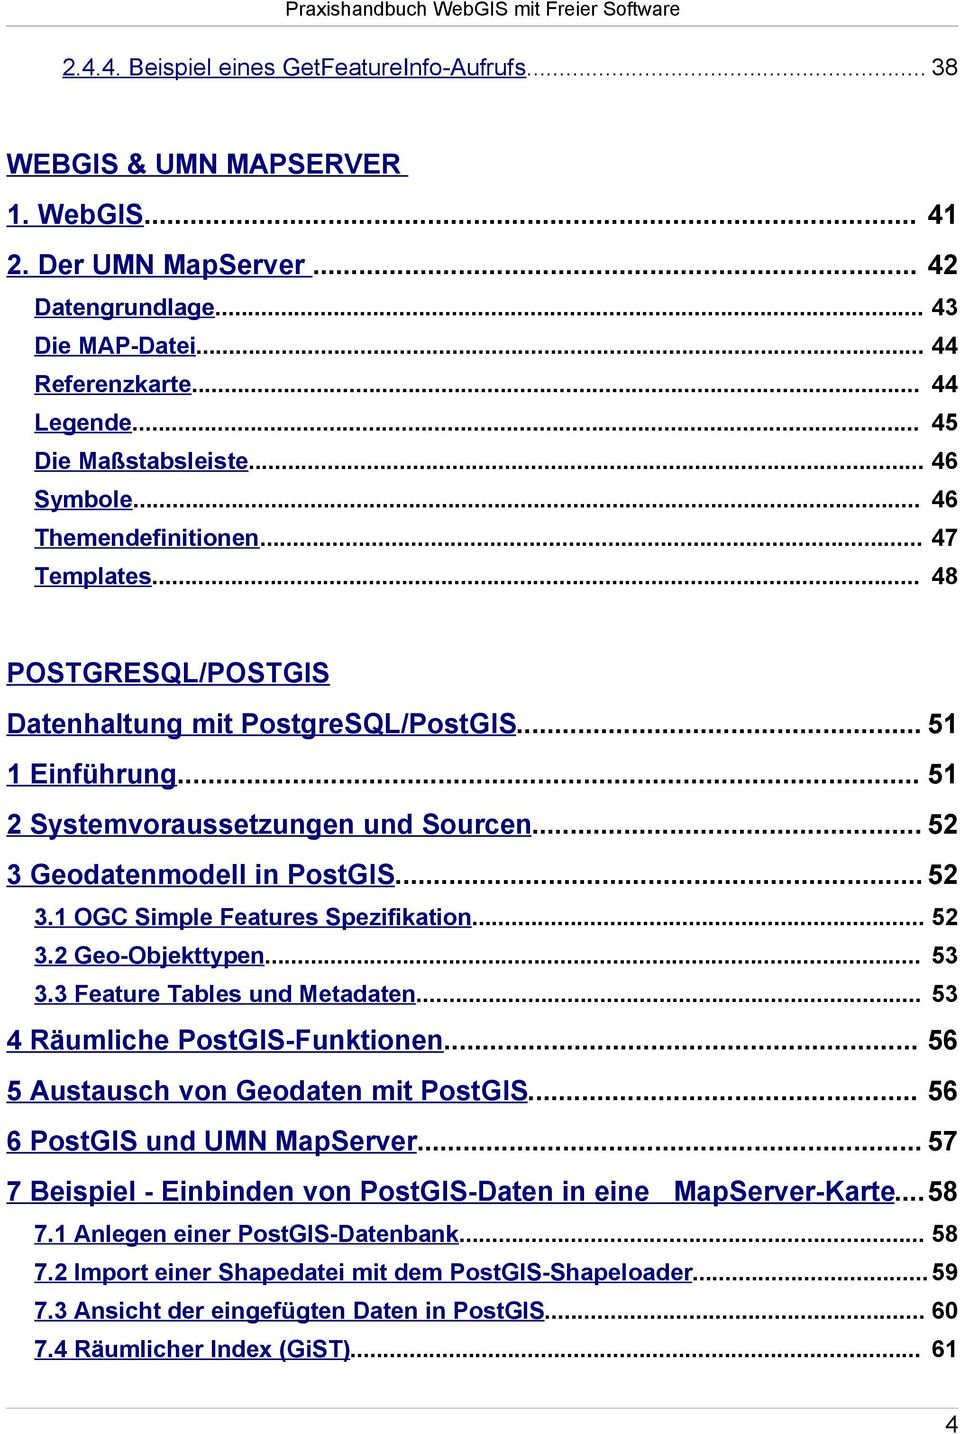 .. 52 3 Geodatenmodell in PostGIS... 52 3.1 OGC Simple Features Spezifikation... 52 3.2 Geo-Objekttypen... 53 3.3 Feature Tables und Metadaten... 53 4 Räumliche PostGIS-Funktionen.